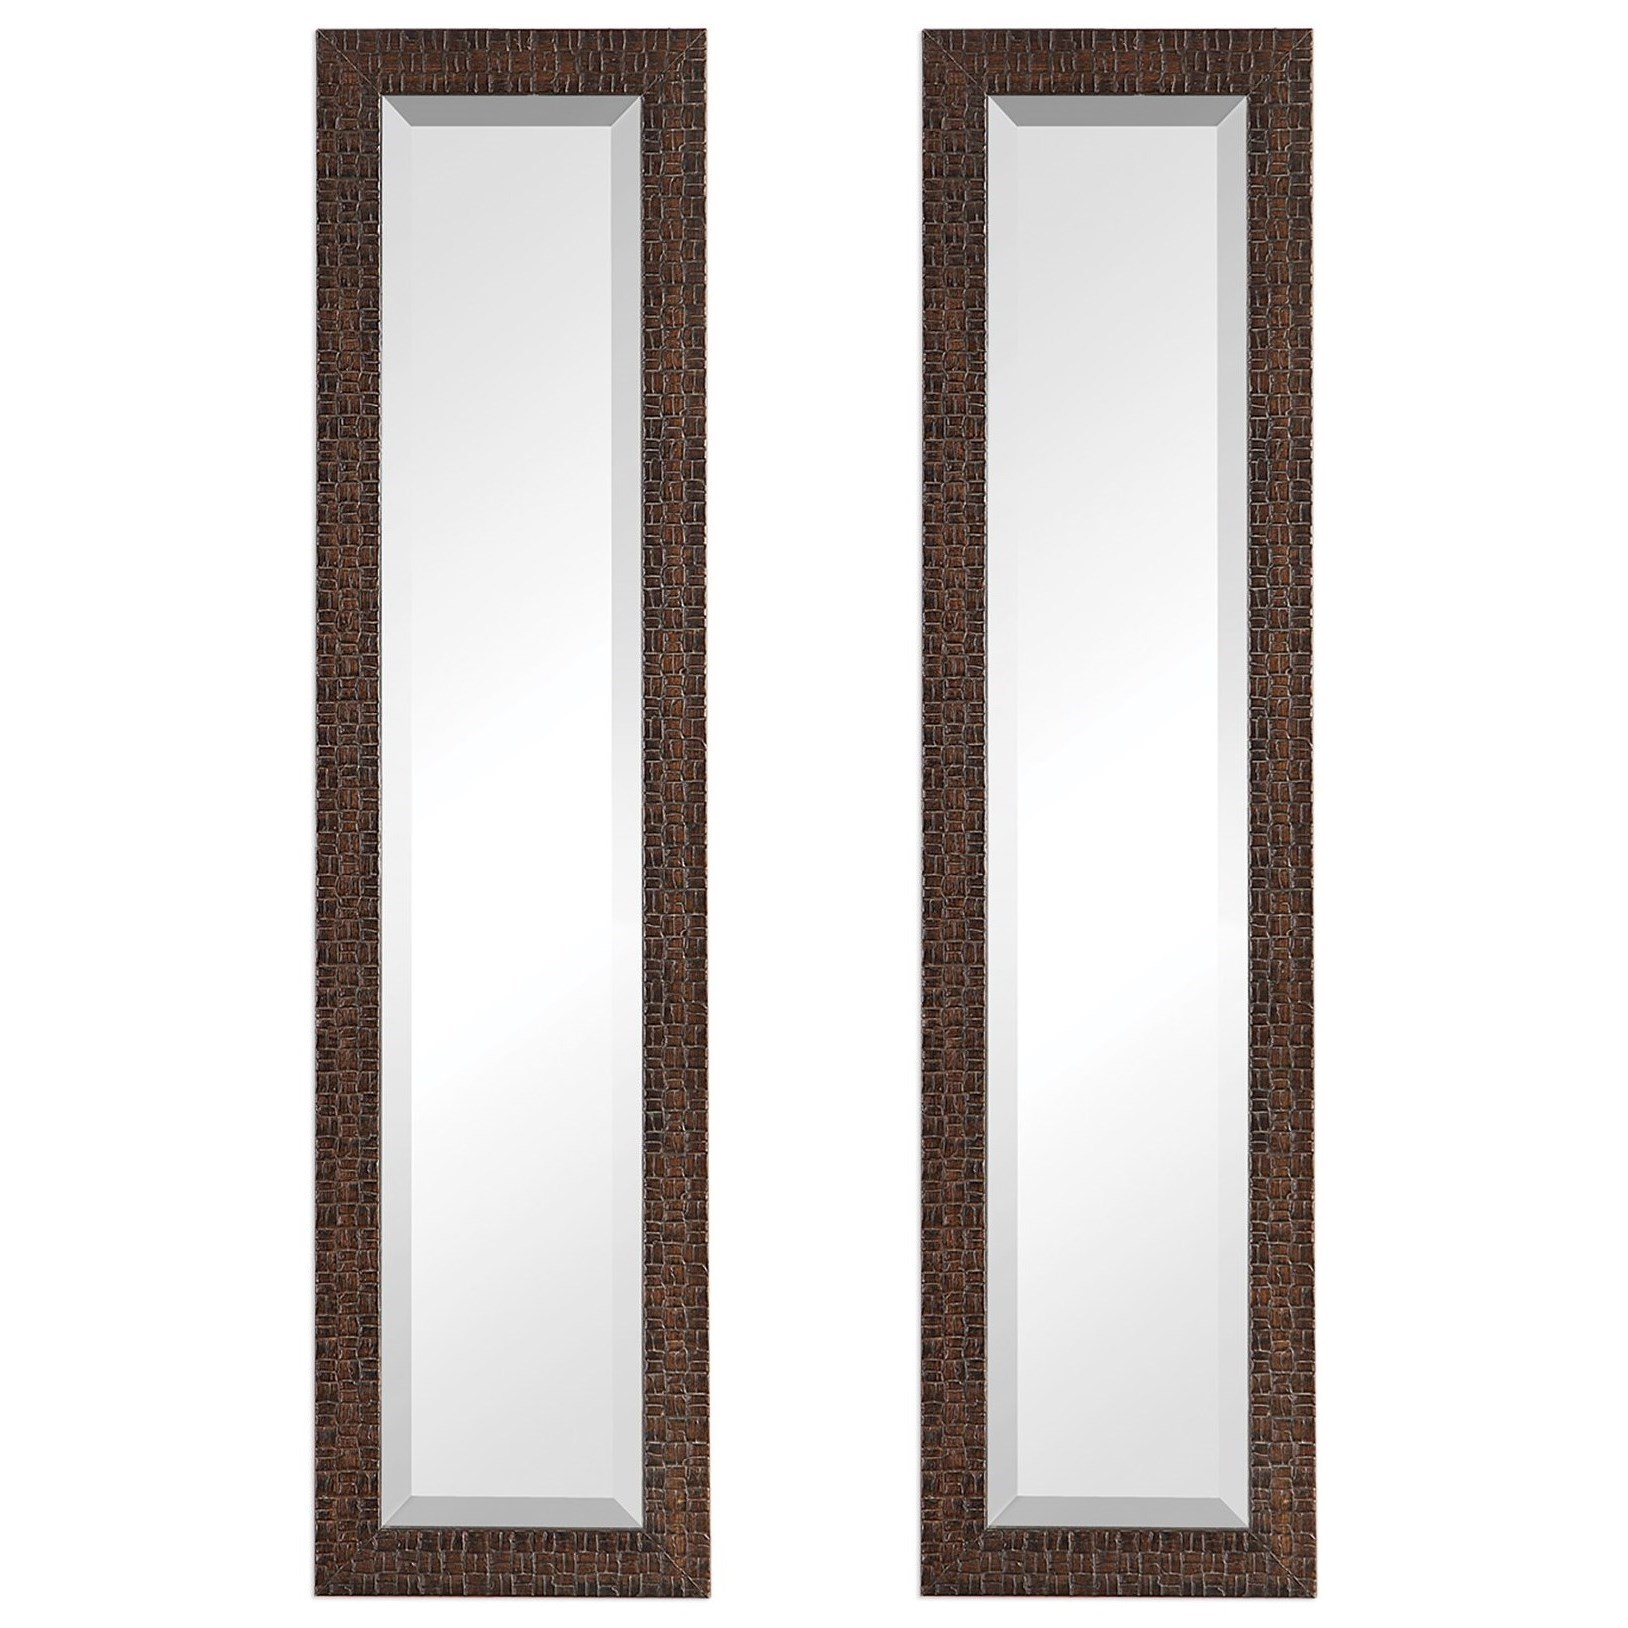 Ailani Burnished Brown Mirror, S/2